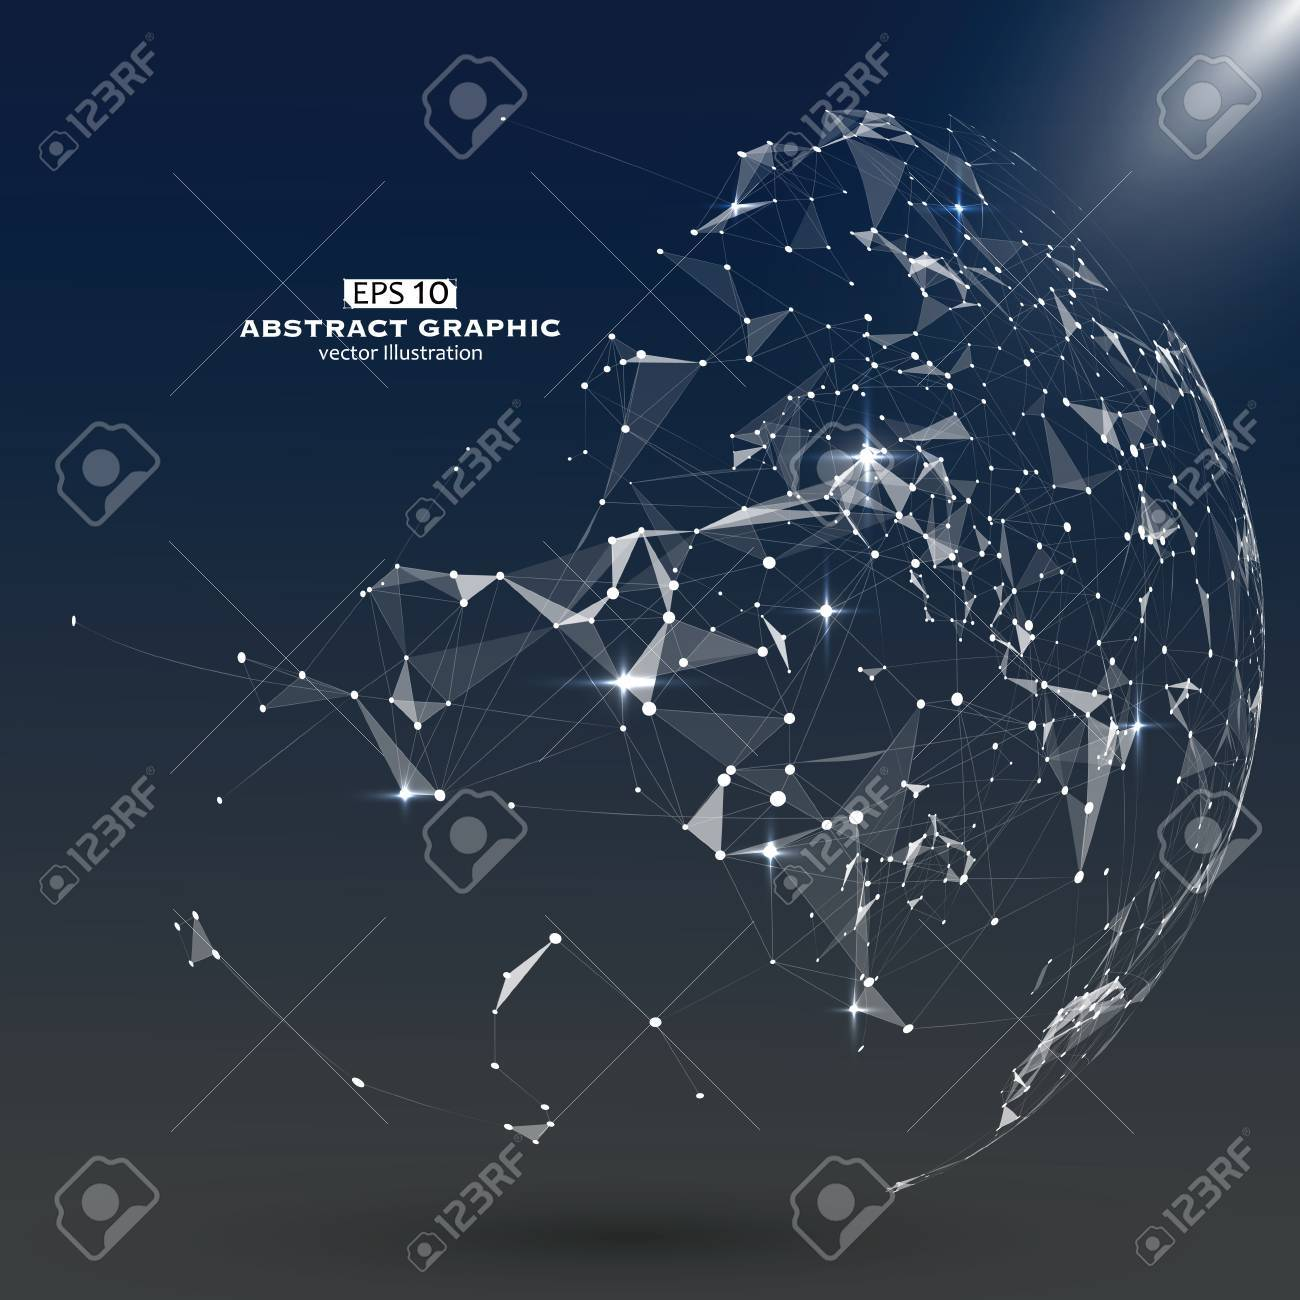 Abstract Map Of The World.Point Line And Constitute An Abstract Map Of The World A Sense